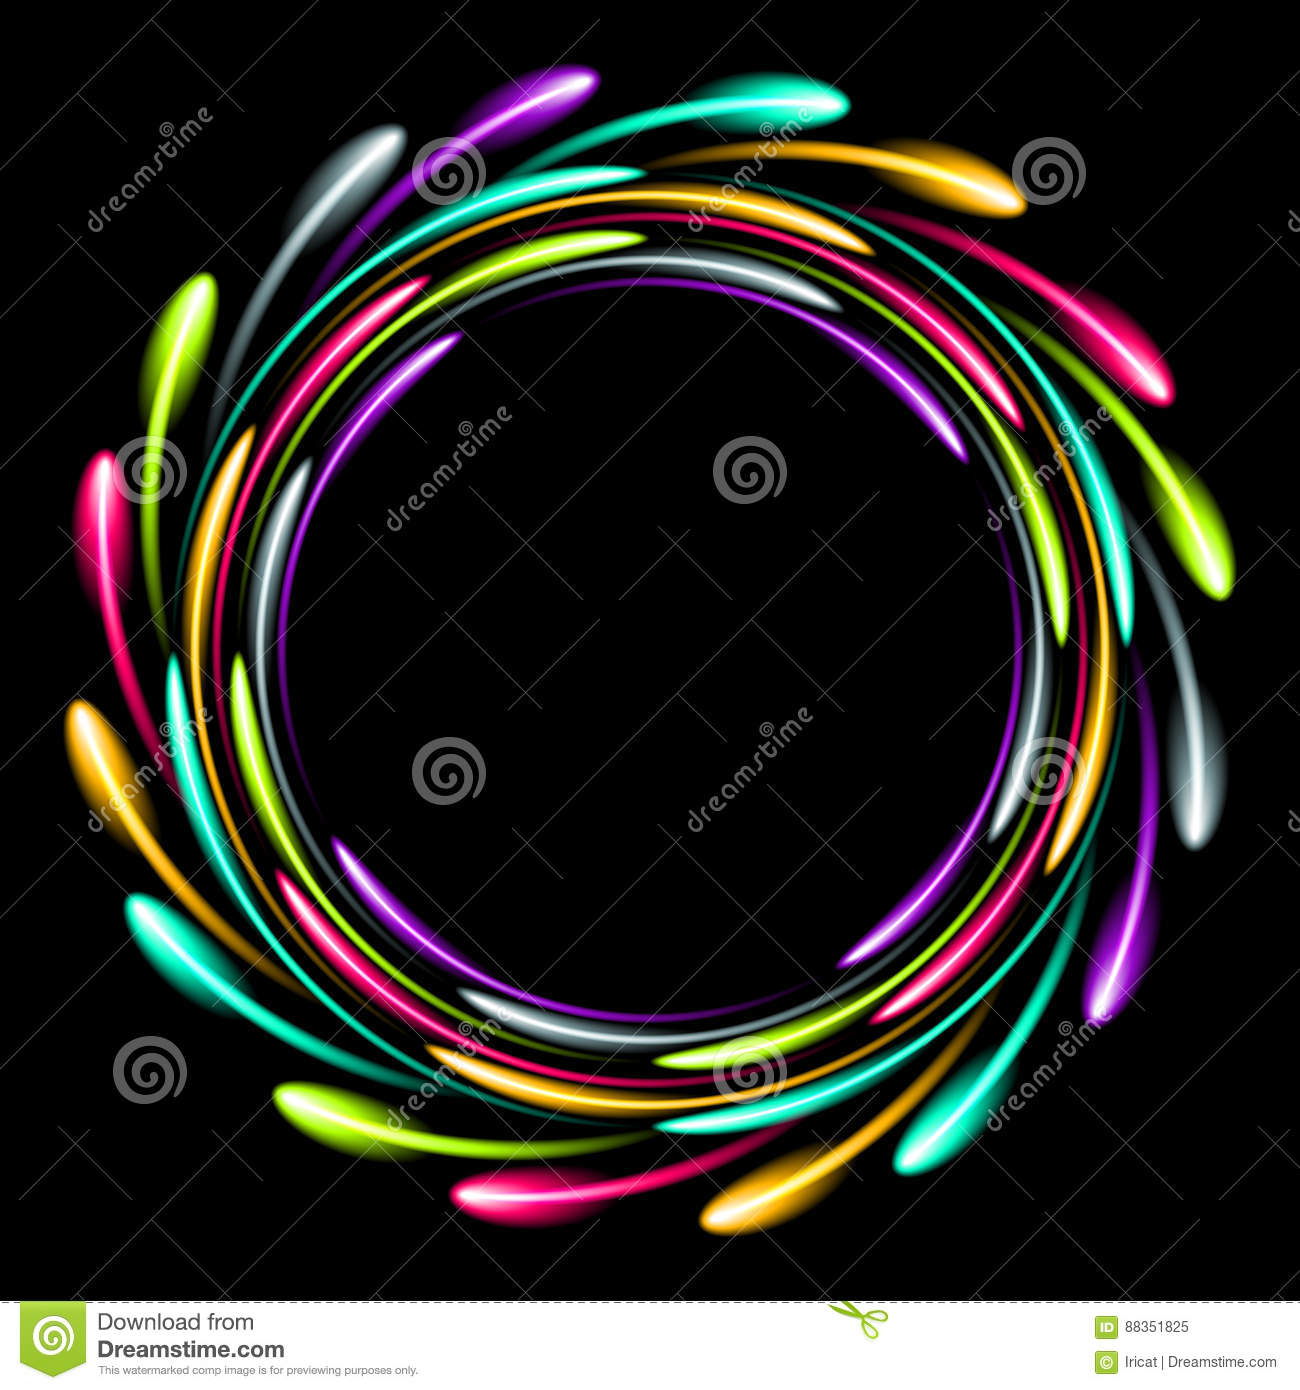 Shining glowing neon ring. Abstract background with a luminous effect.